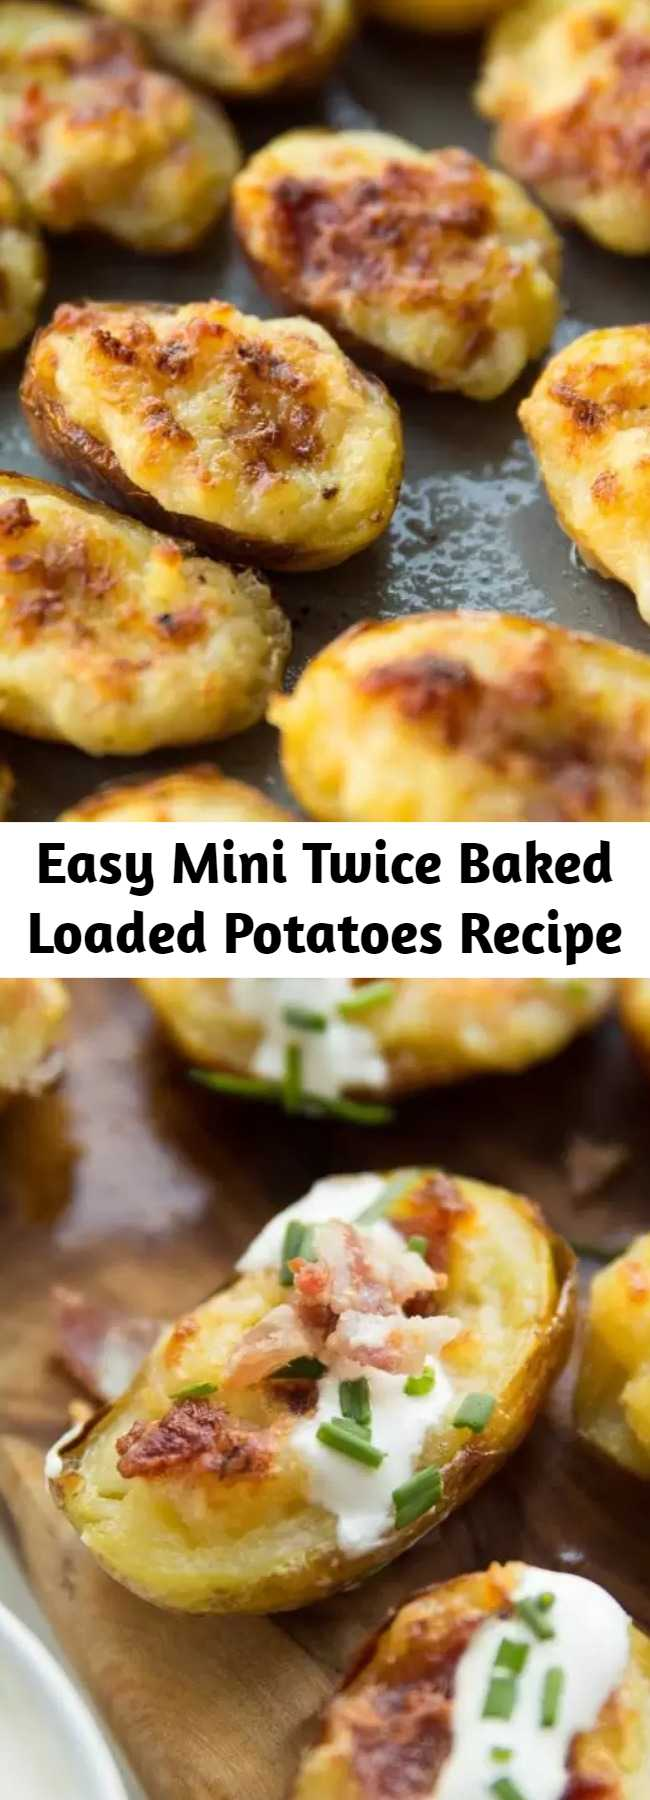 Easy Mini Twice Baked Loaded Potatoes Recipe - These Mini Twice Baked Potatoes are loaded with bacon and served with sour cream and fresh chives. Say hello to your new favourite finger food! #cheese #bacon #potato #loadedpotatoes